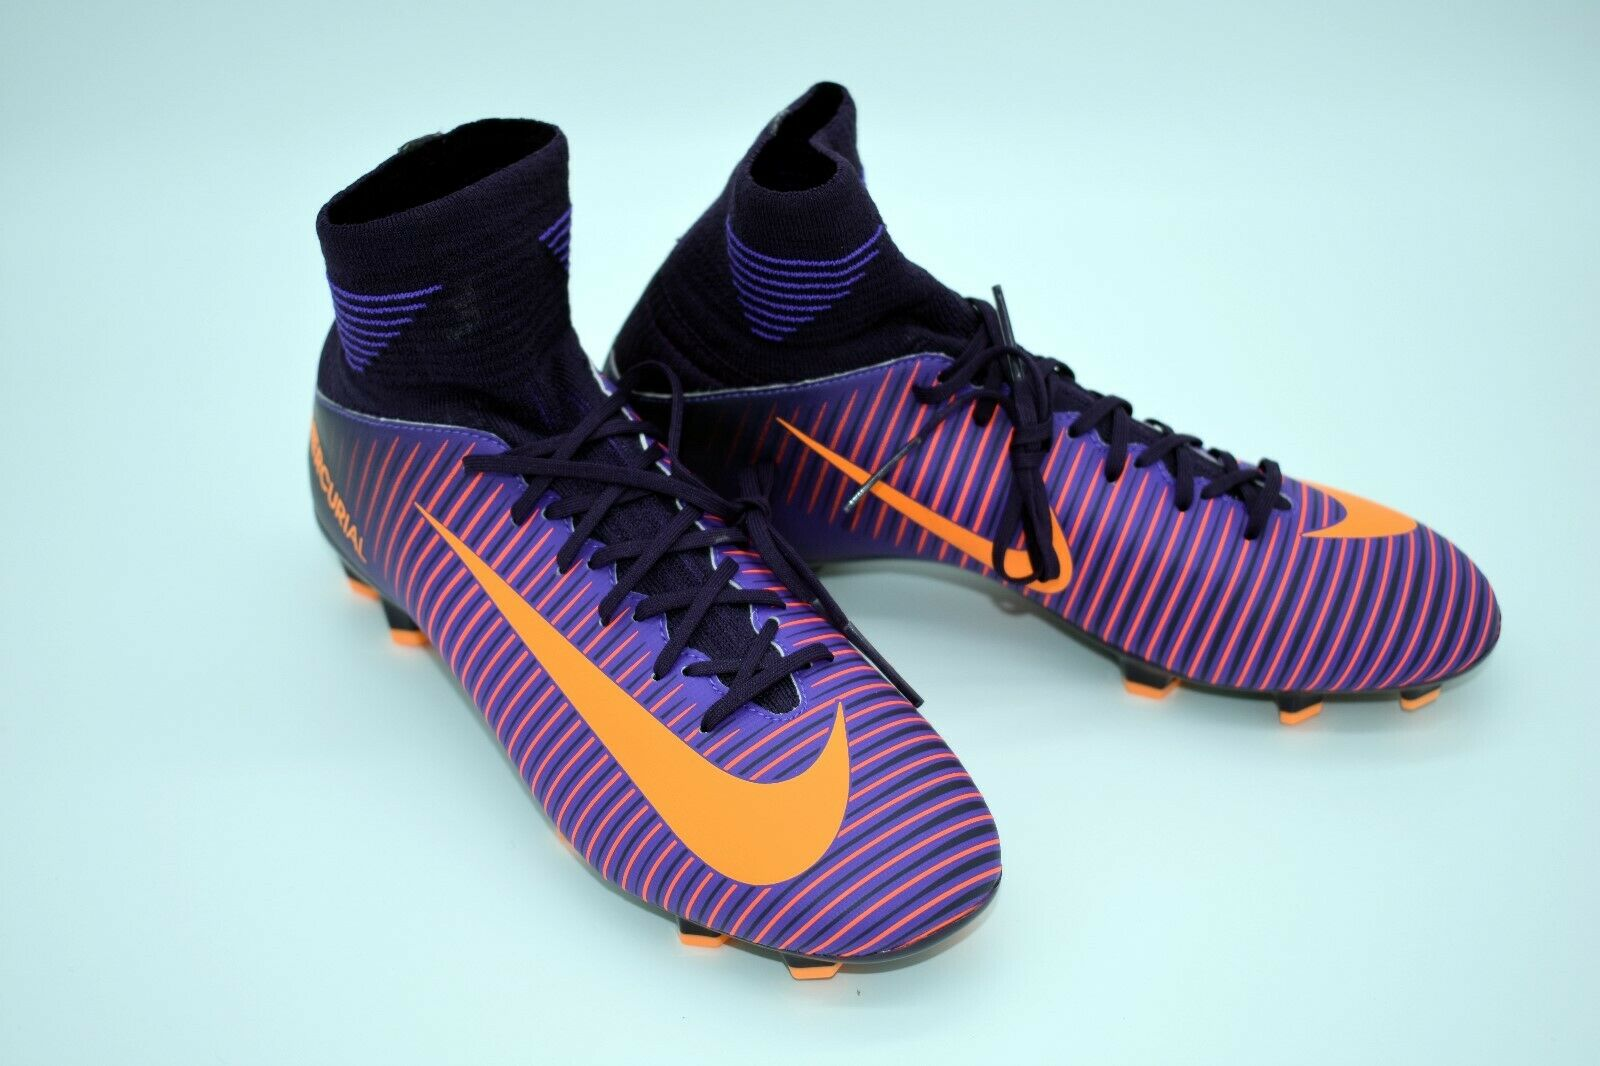 big sale fc643 233c7 Nike Jr Mercurial Superfly V FG Soccer Cleats Sz 4y 100 Auth 831943 585  Youth for sale online   eBay